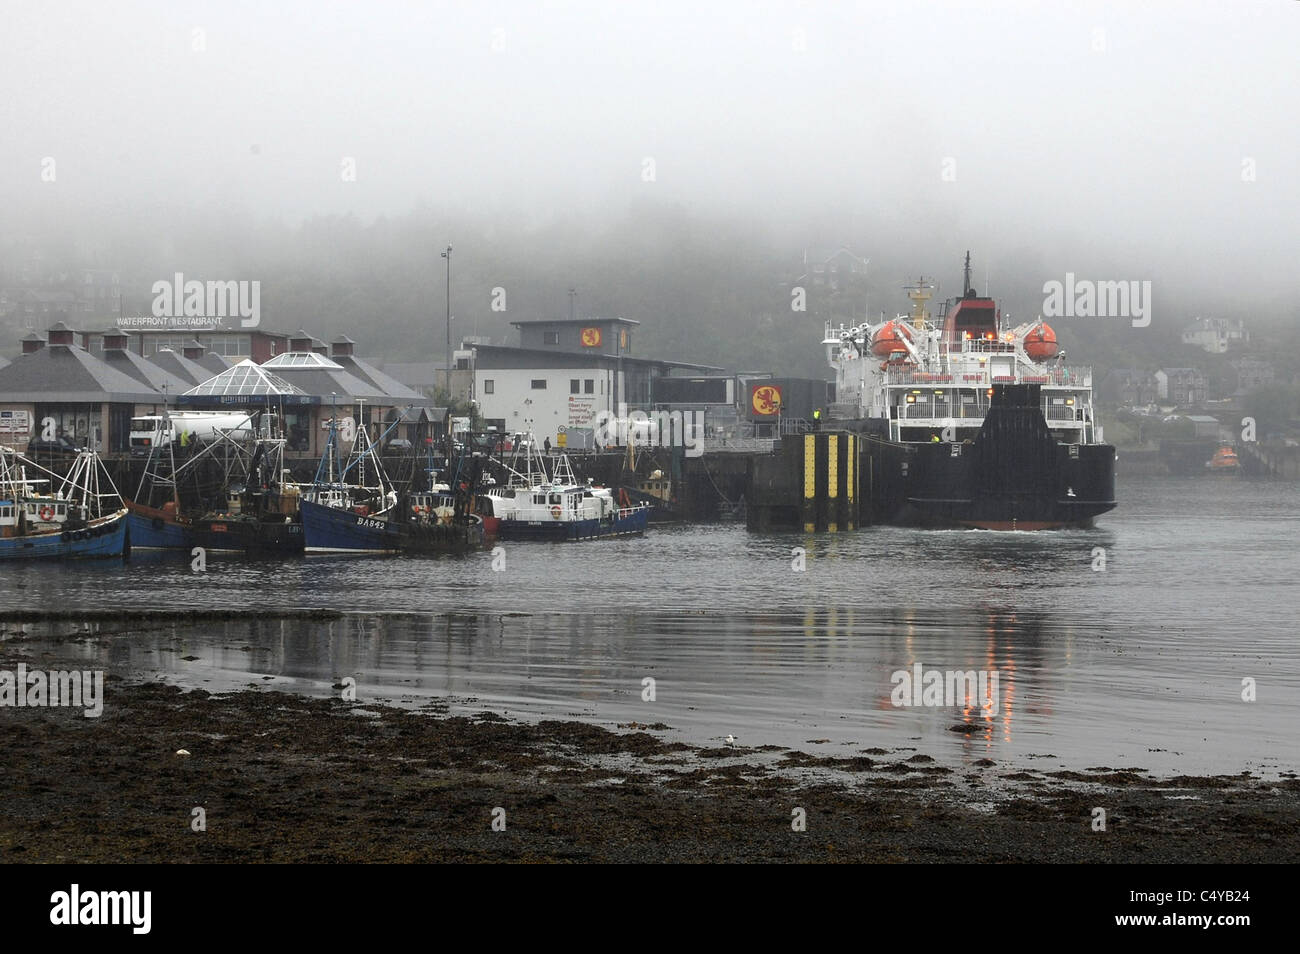 Oban Ferry Terminal in bad weather with docked ferry Scotland - Stock Image